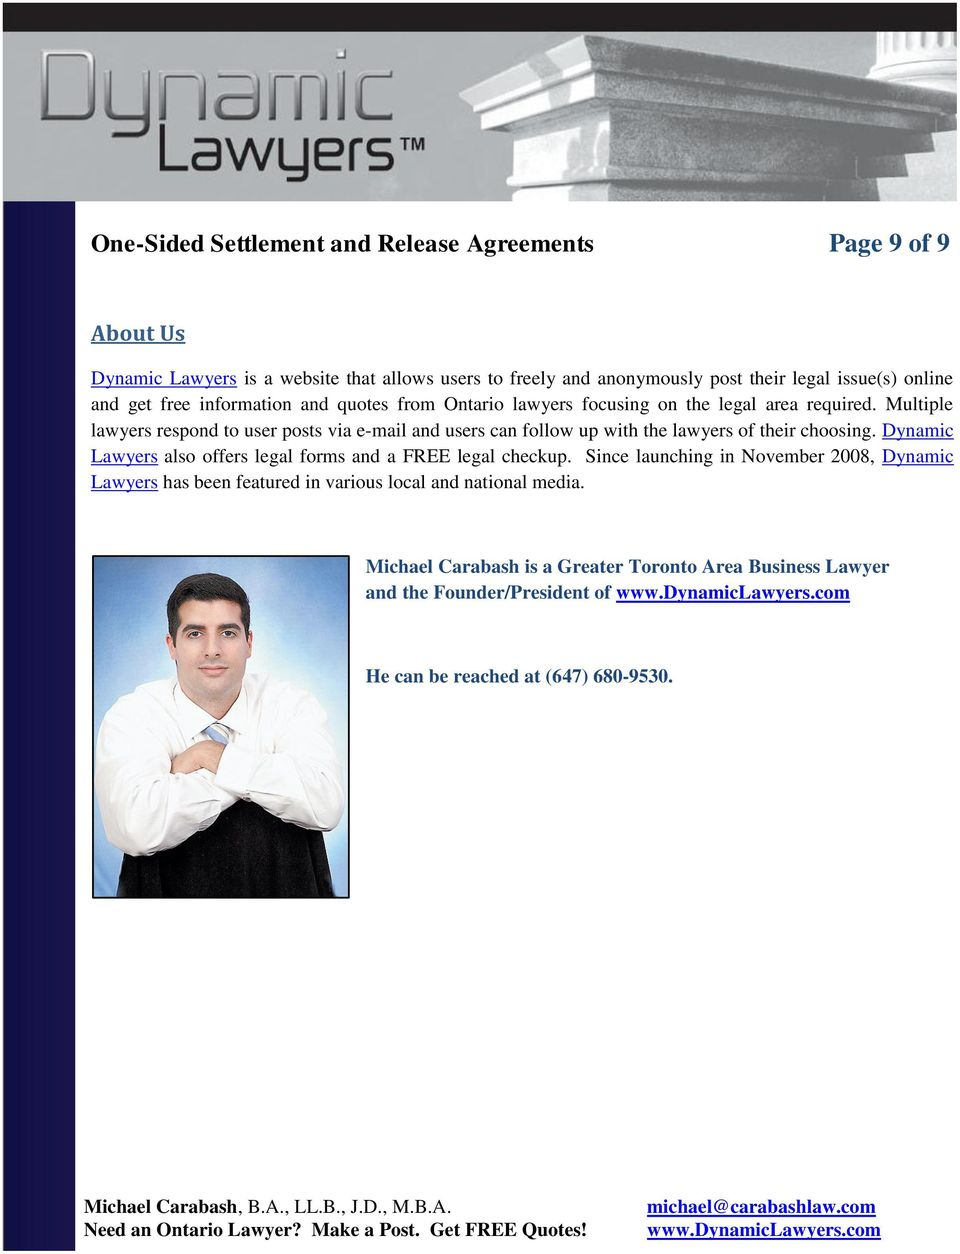 Multiple lawyers respond to user posts via e-mail and users can follow up with the lawyers of their choosing.